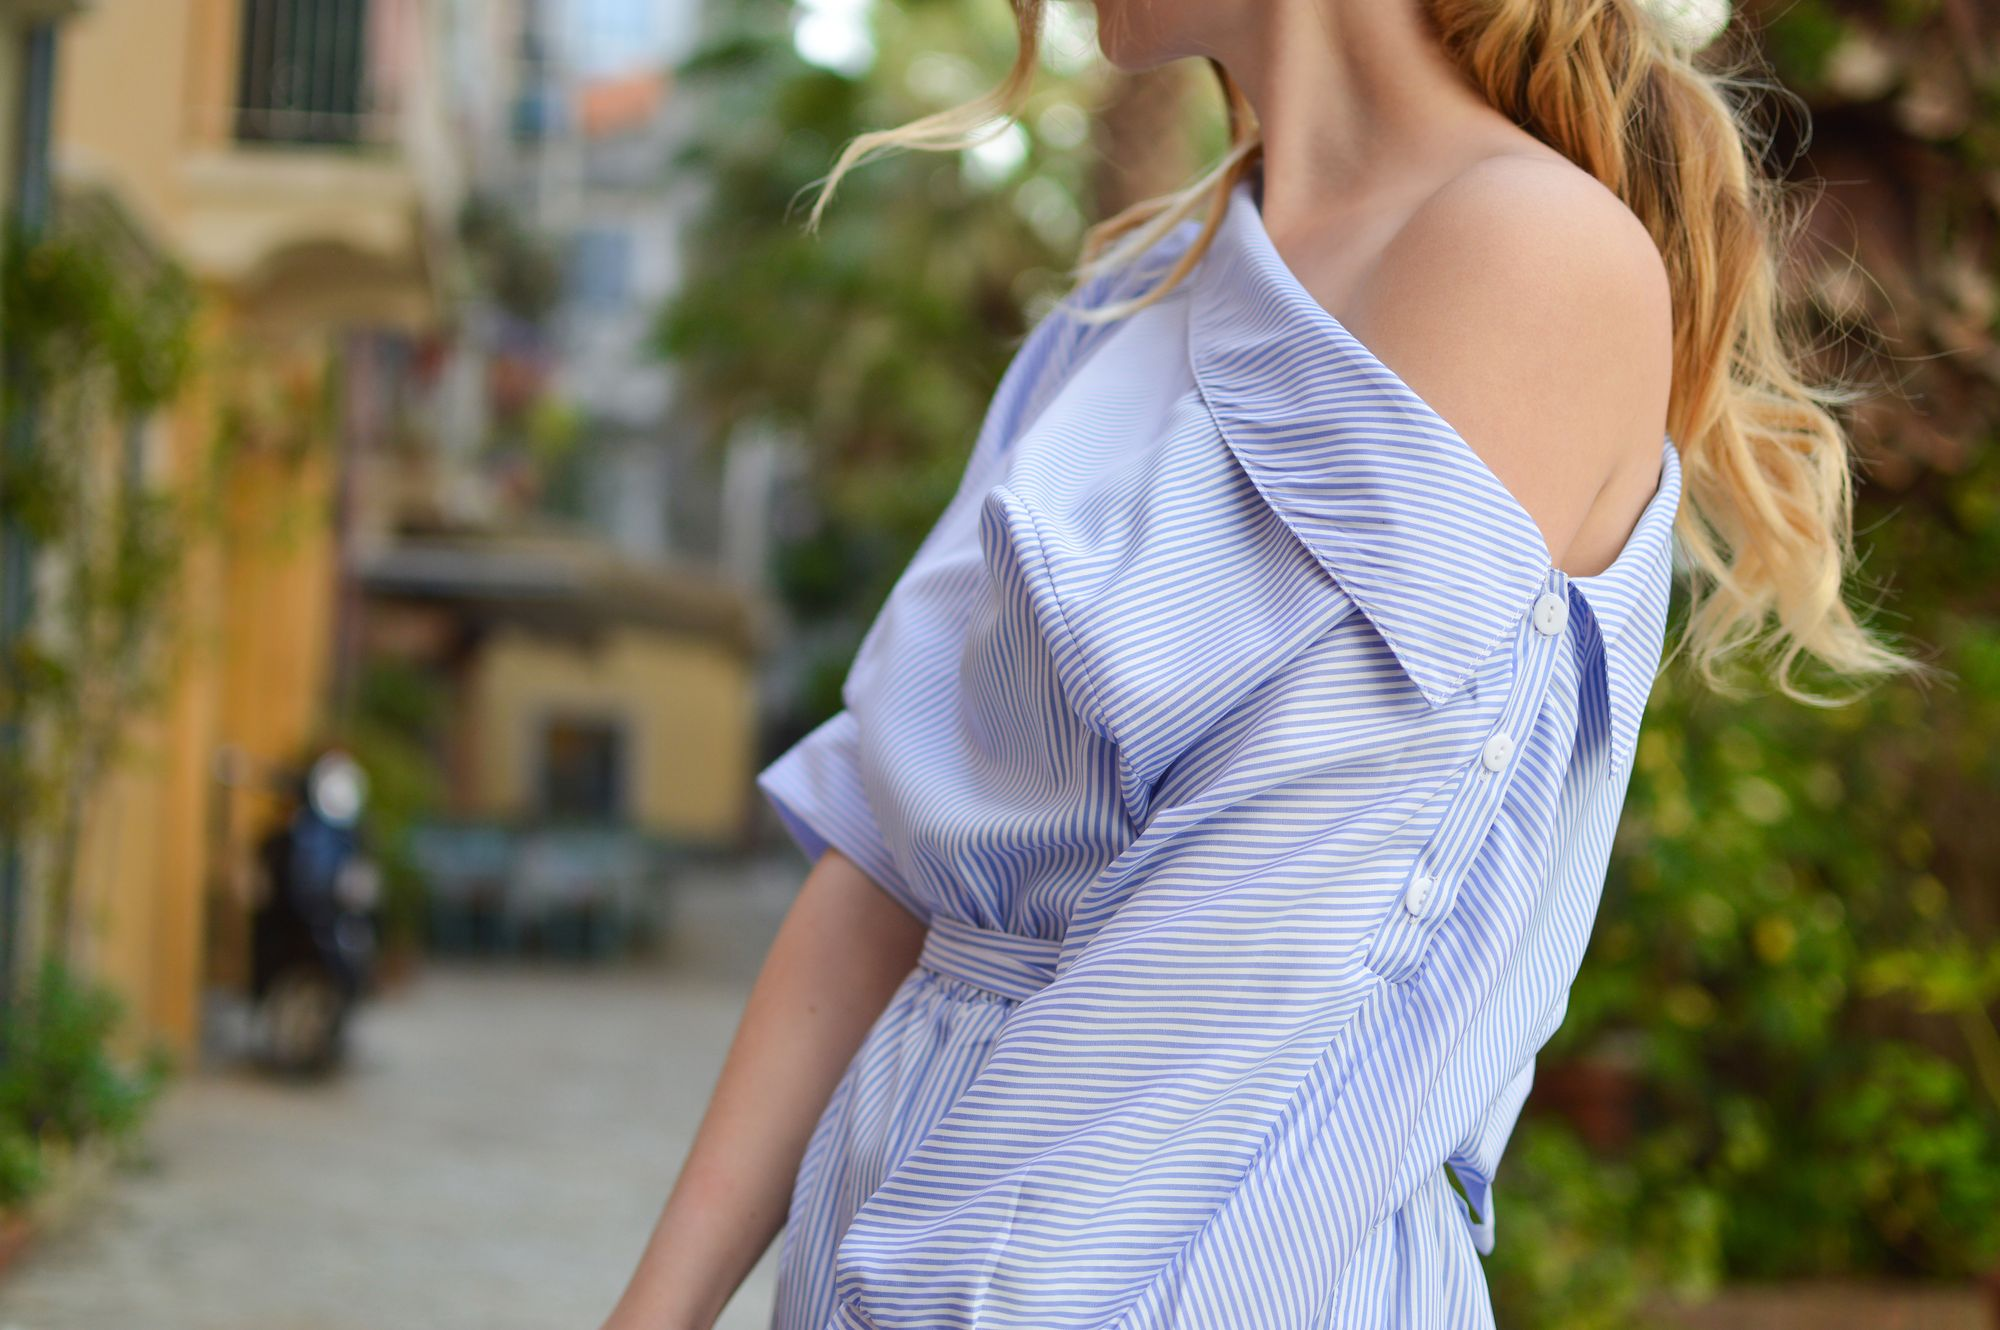 The One Shoulder Tops You Haven't Seen Yet